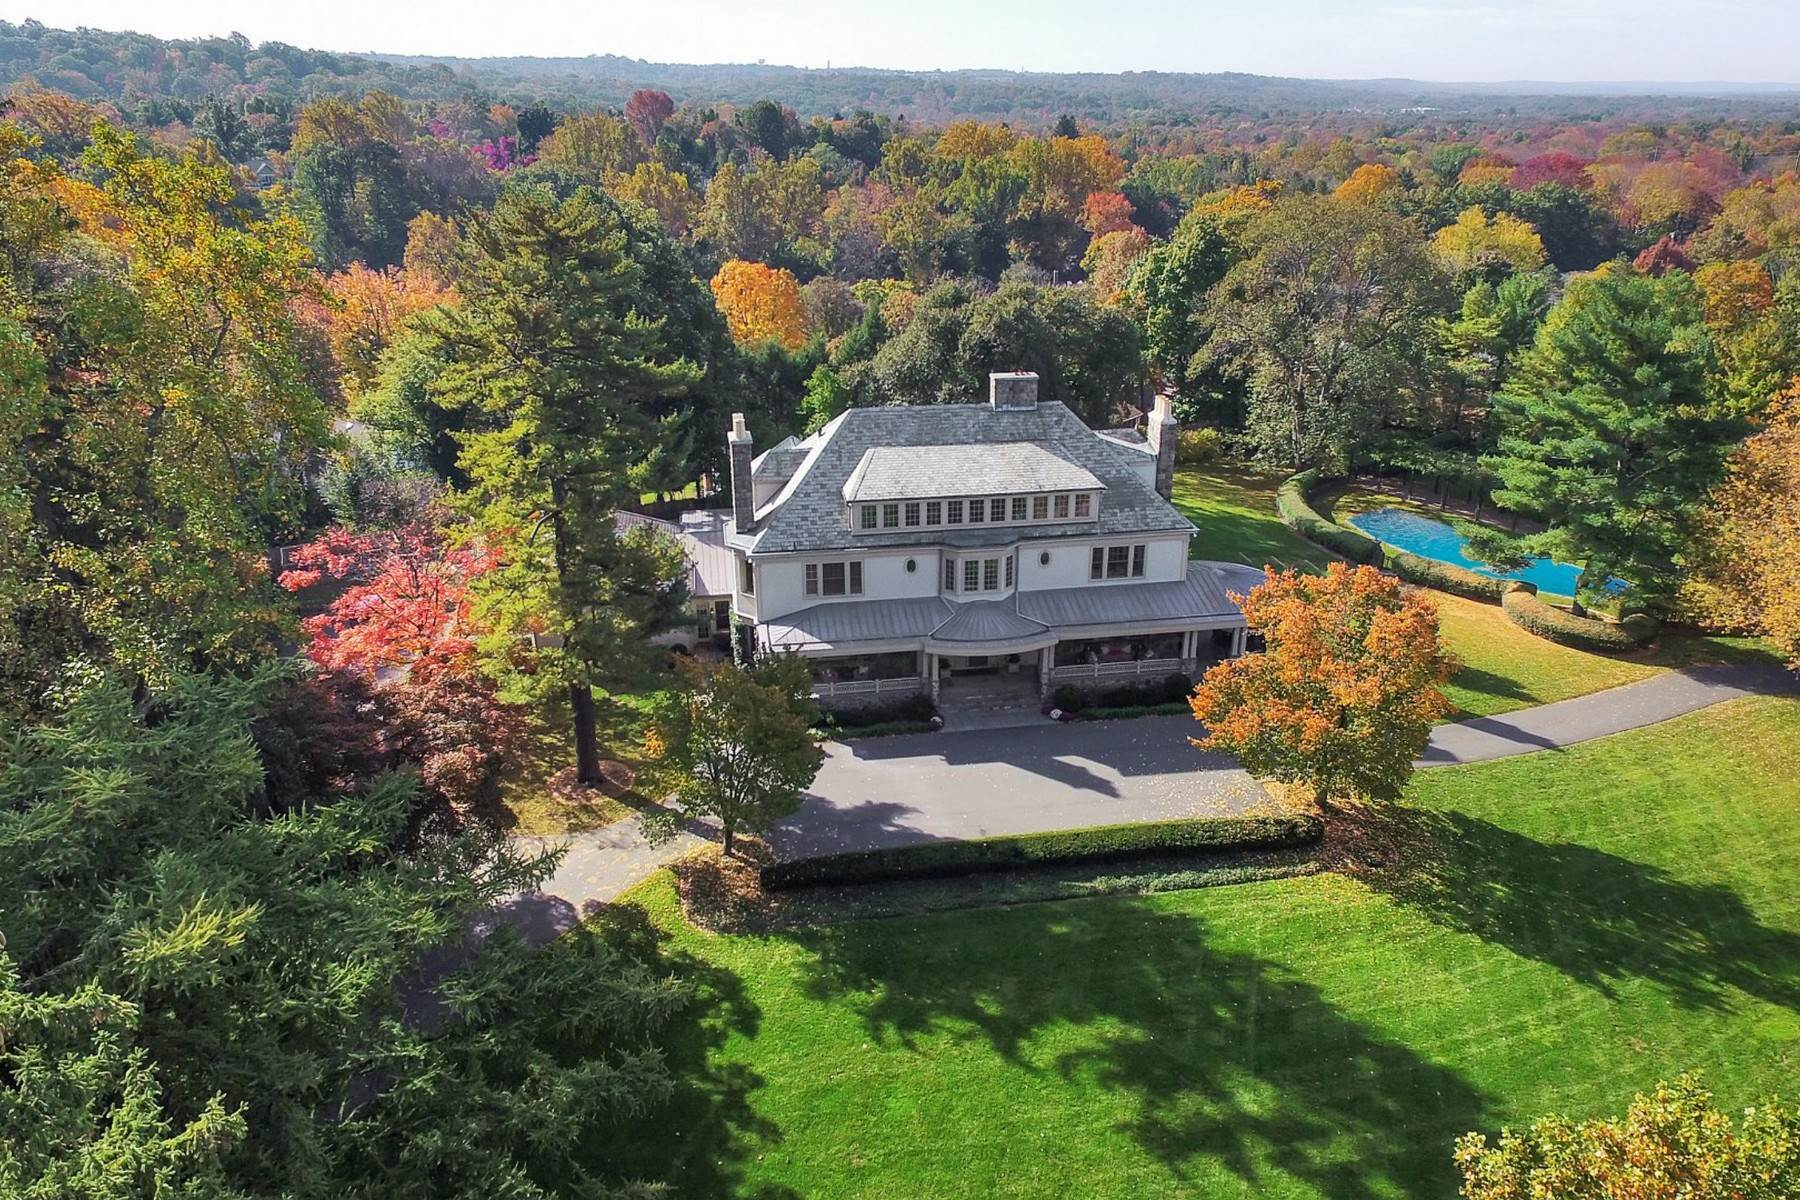 Single Family Homes for Sale at Estate Finisterre 40 Beekman Terrace Summit, New Jersey 07901 United States